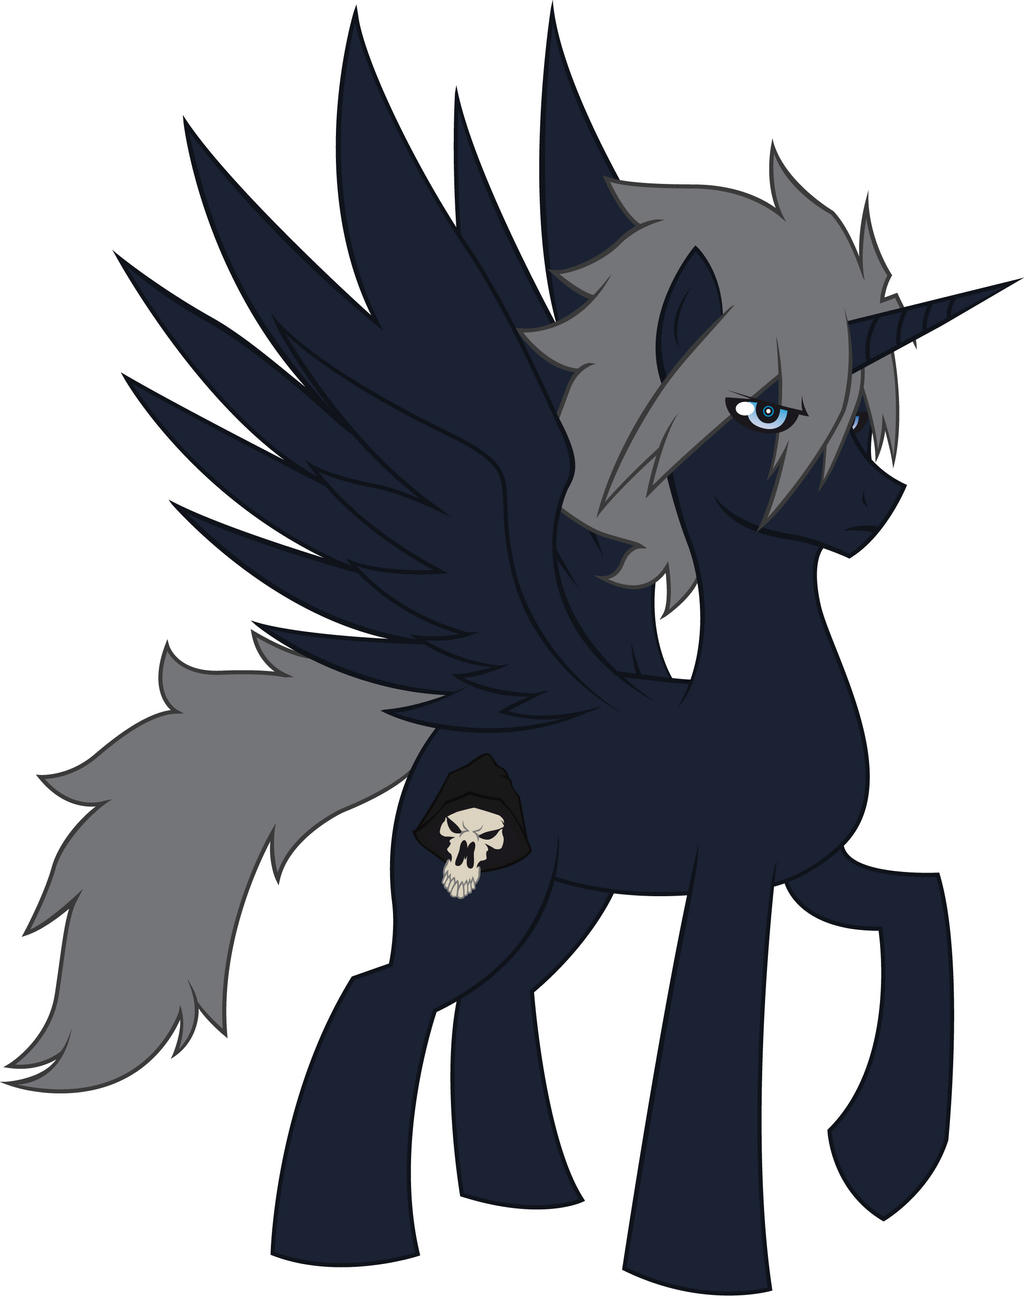 OC character name: Nightcore (also know as Death) by MegaBlack0X